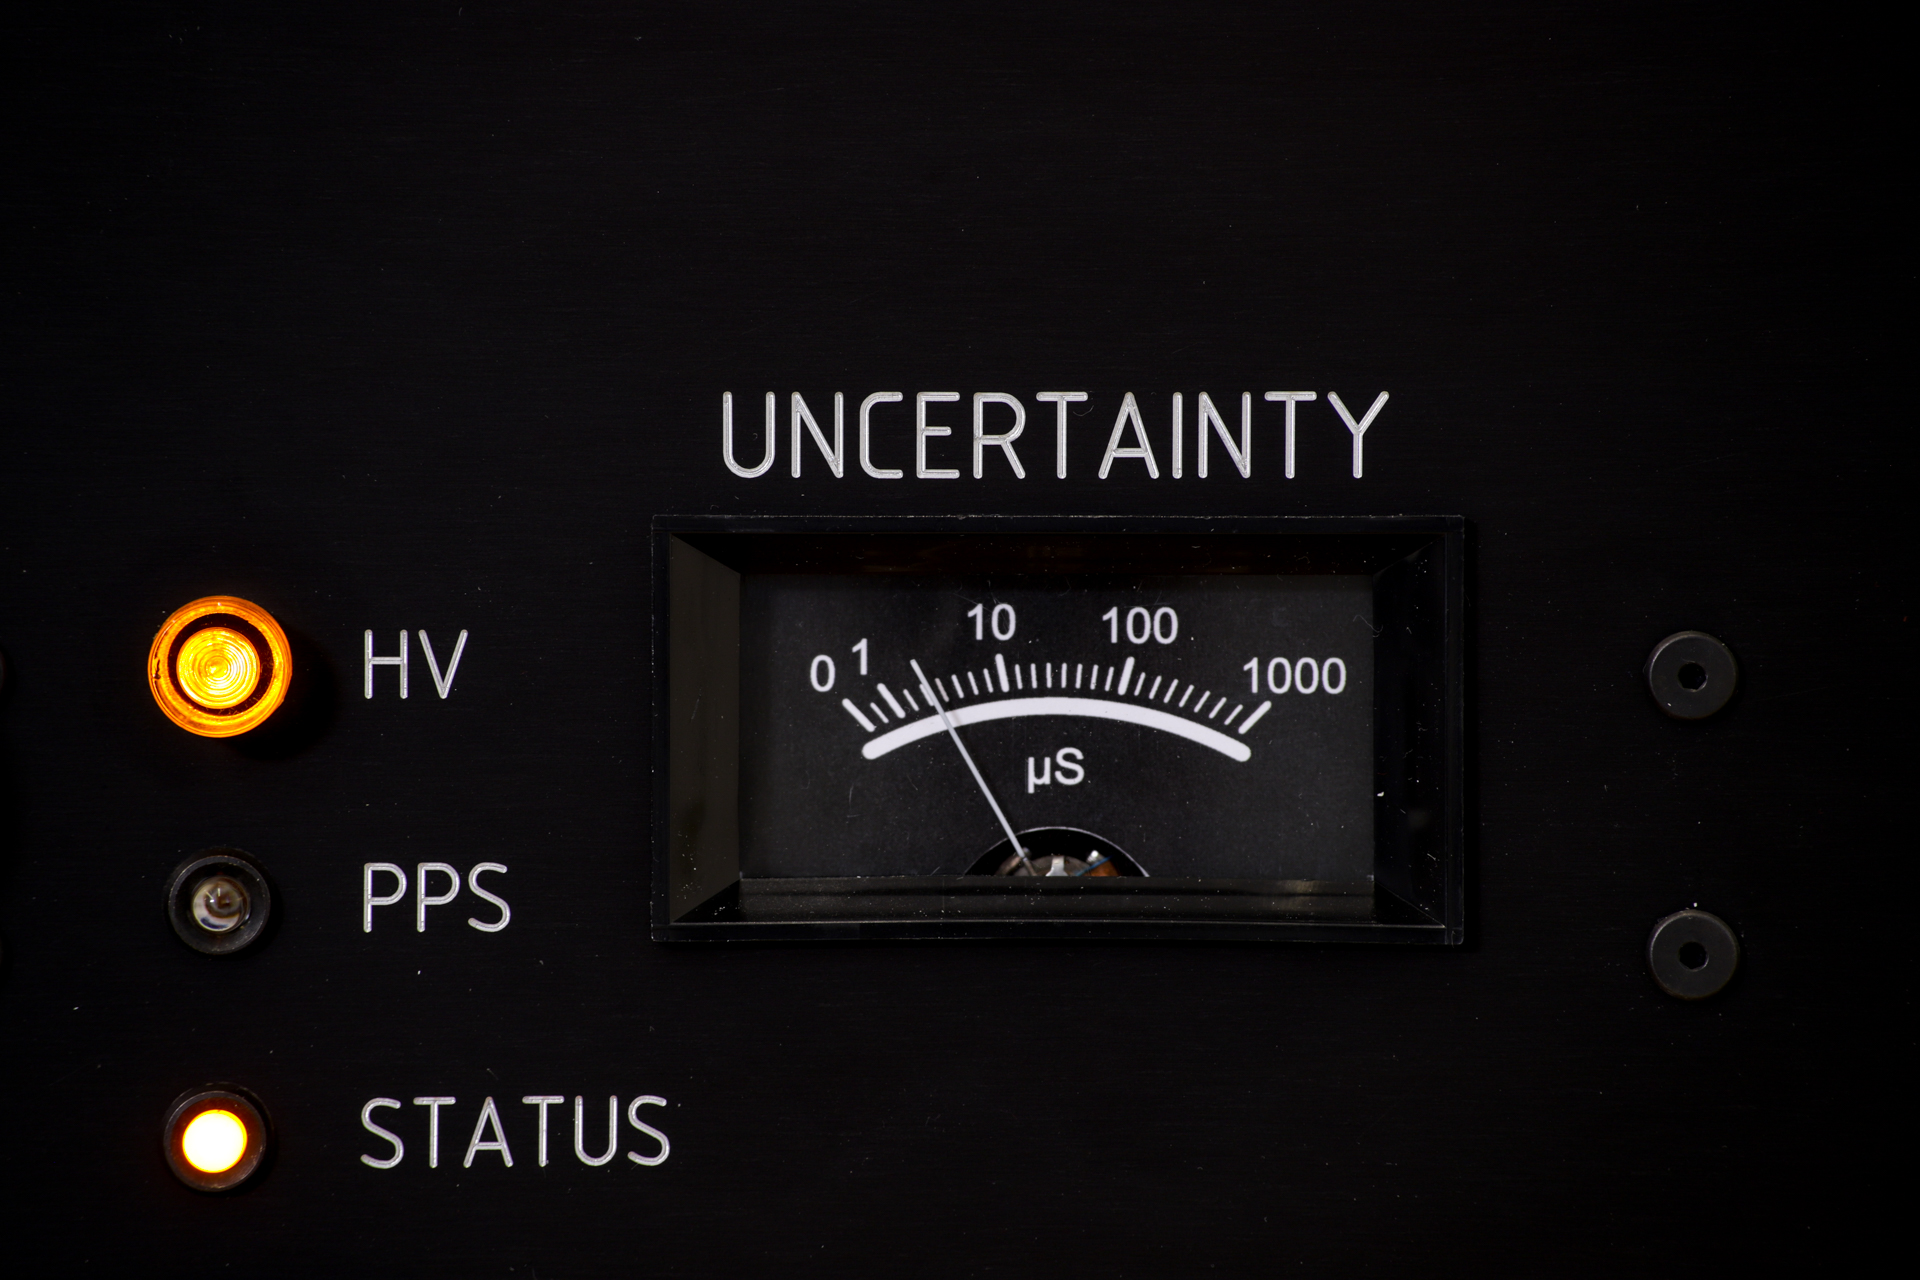 Uncertainty meter